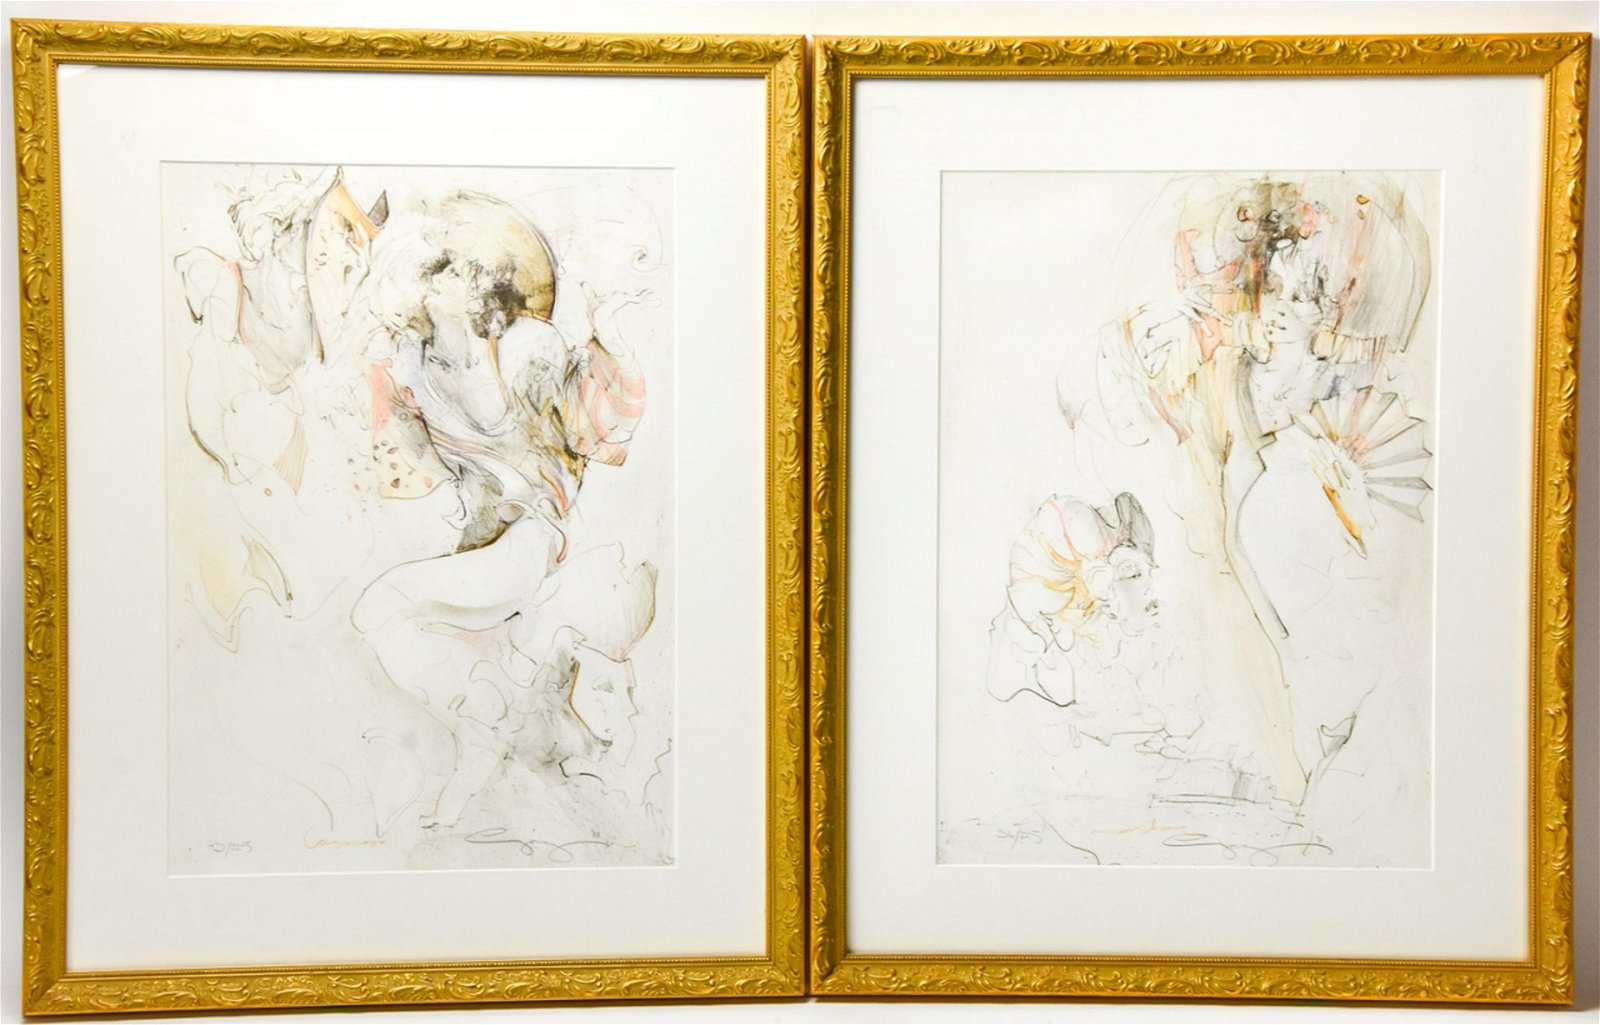 Robert Beauchamp Pencil Signed Art Limited Edition Lithograph